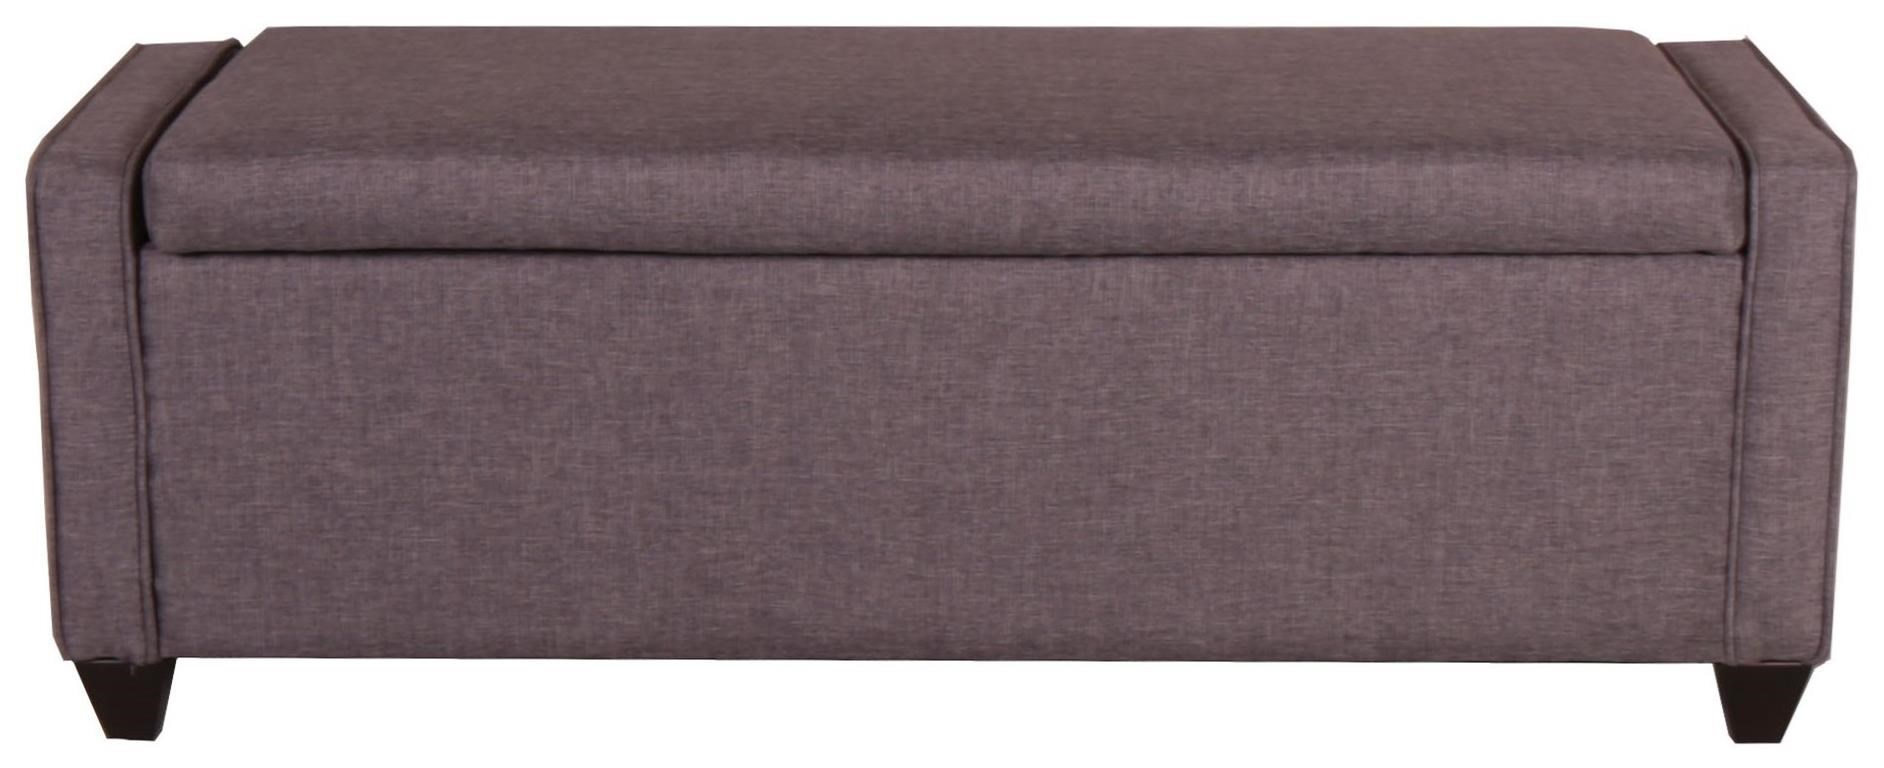 Upholstered Beds Bed Bench by Liberty Furniture at Lapeer Furniture & Mattress Center